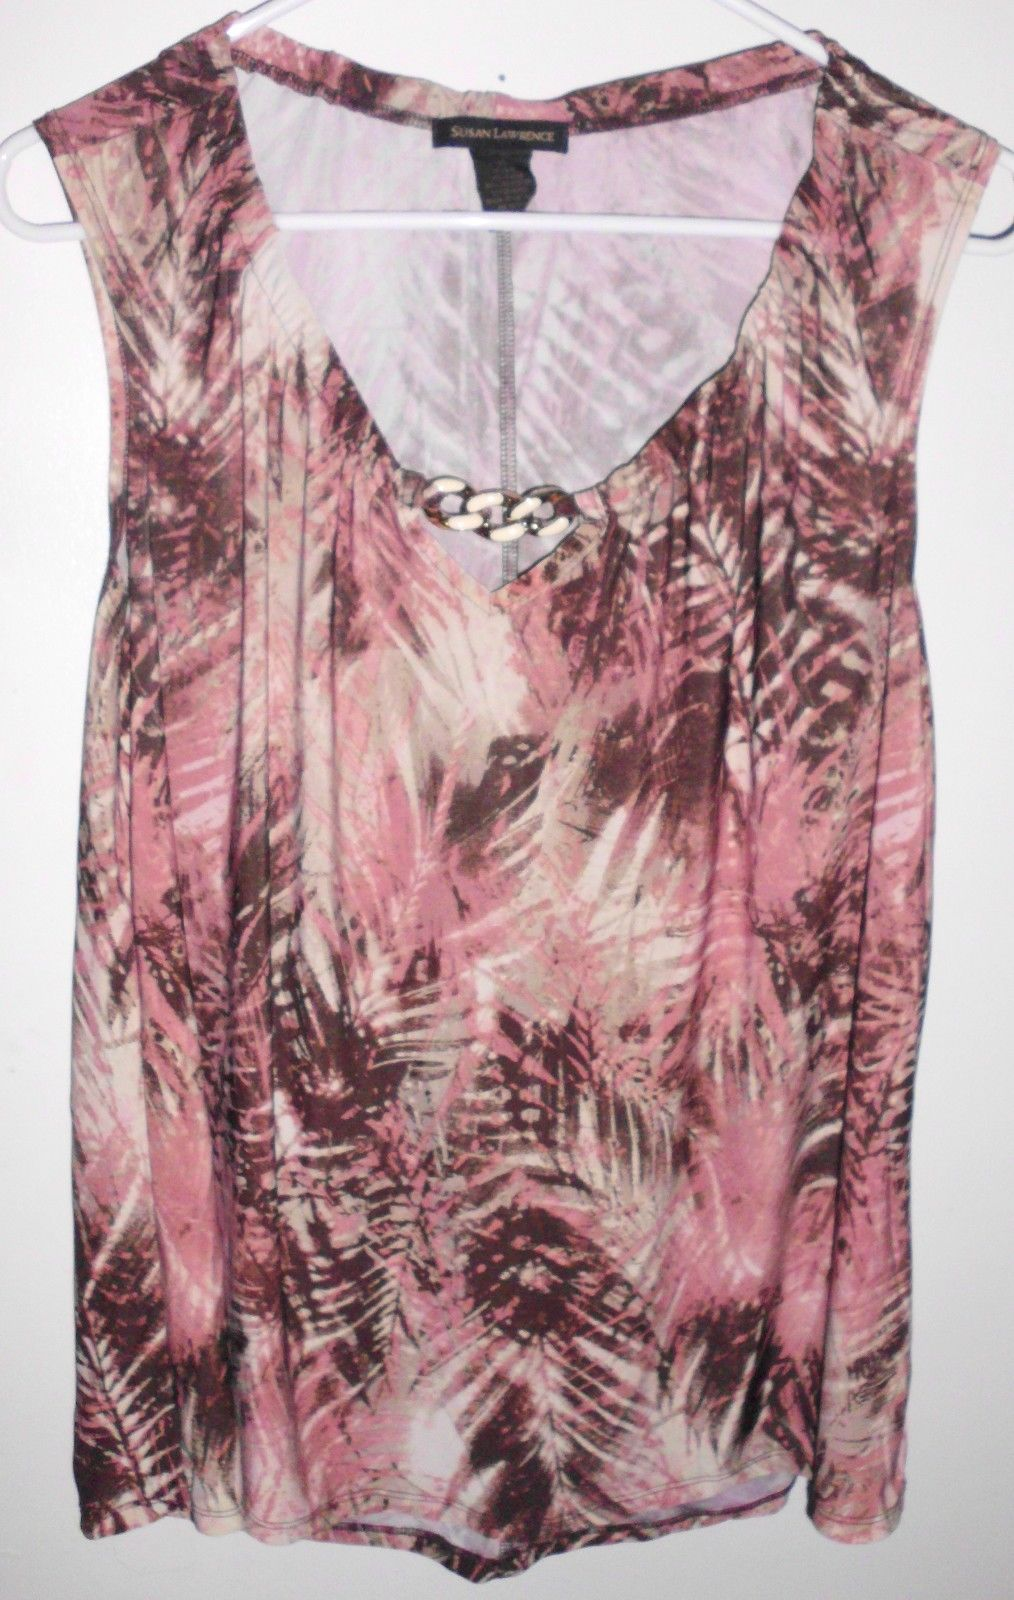 Primary image for SUSAN LAWRENCE Top X-LARGE Sleeveless Stretch Palm Leaf Shirt Women's